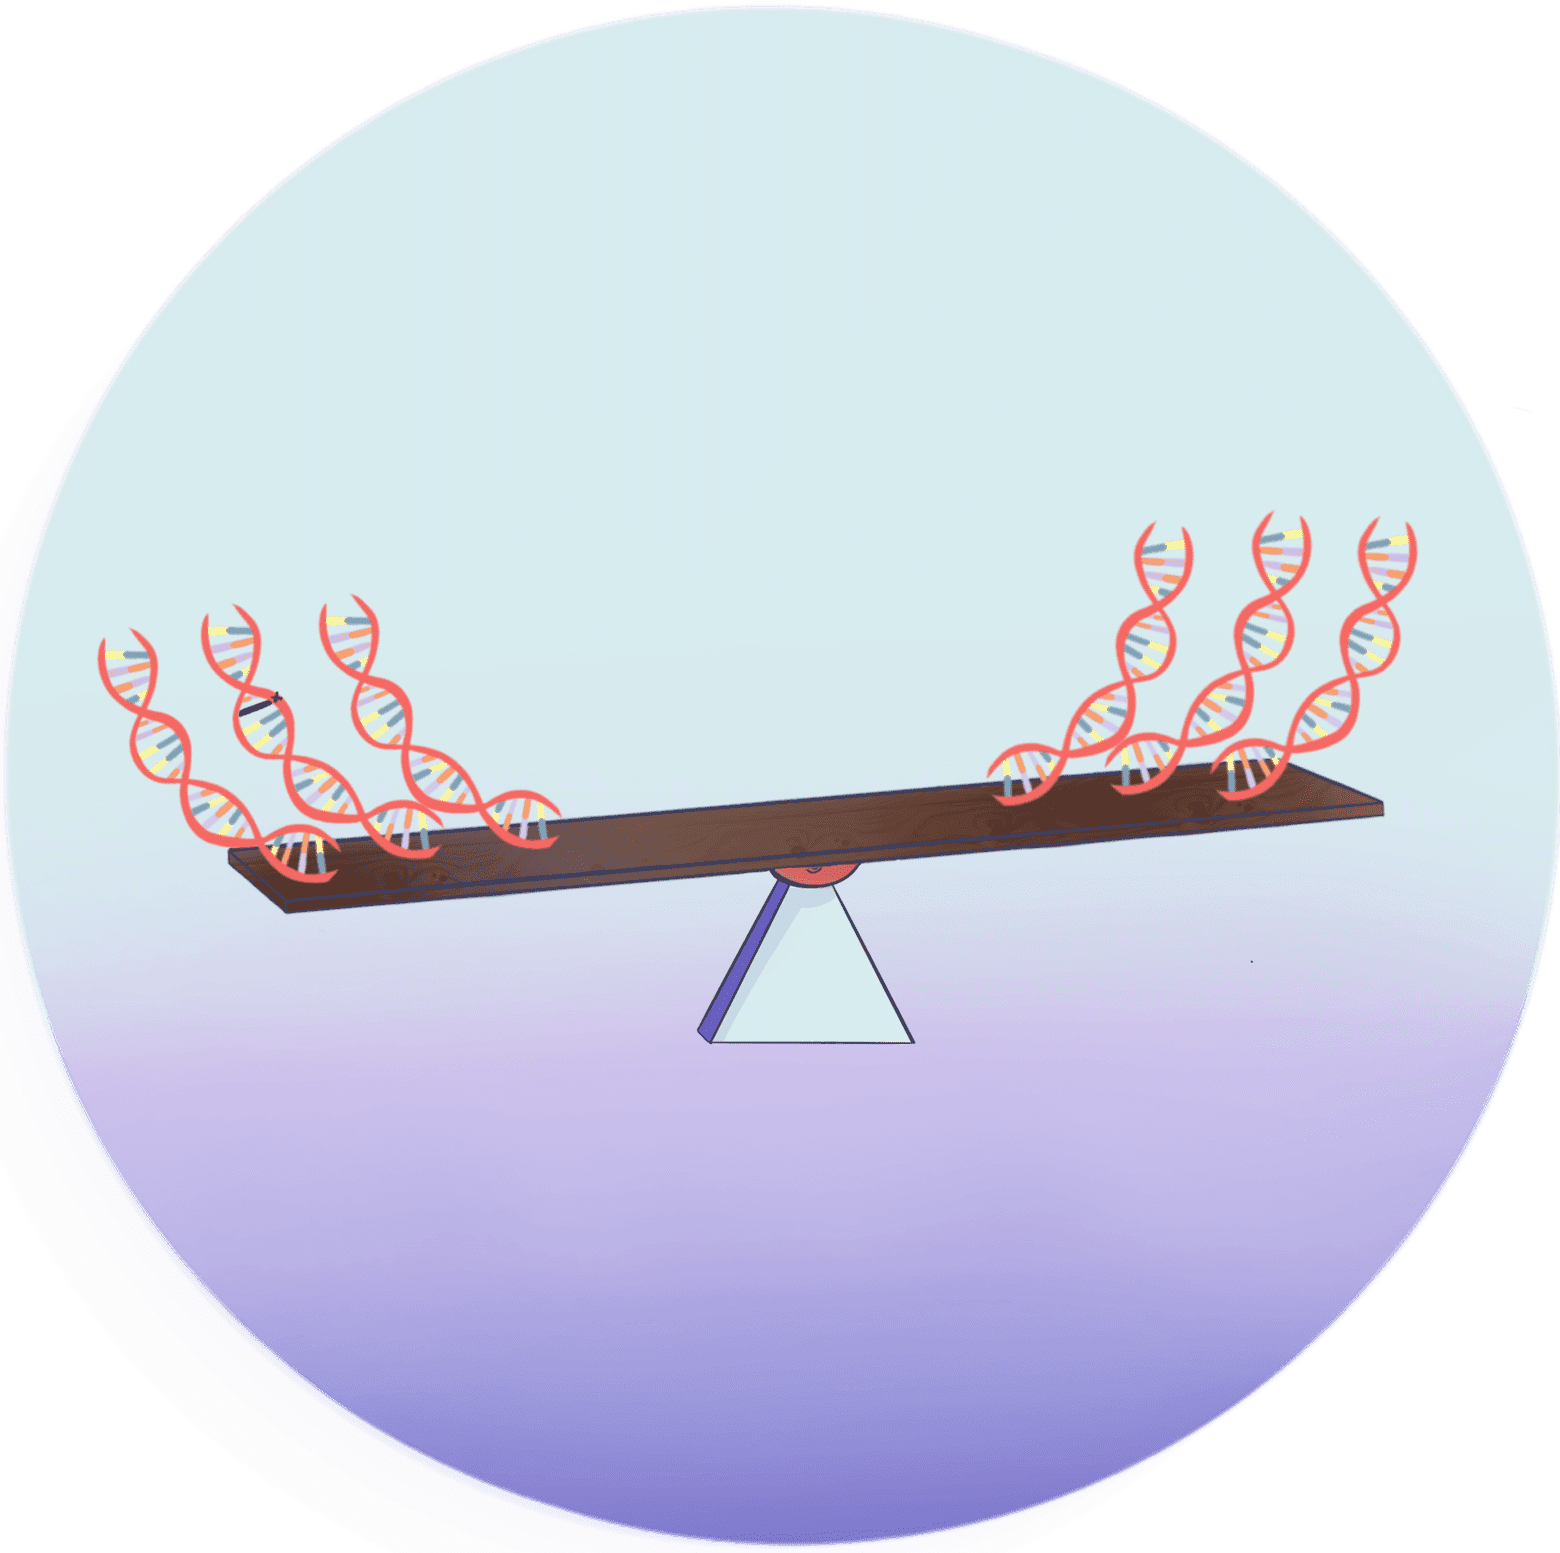 Illustration of DNA on a seesaw. One strand with a mutations tips the seesaw down a little on one side, indicating tipping the balance a little towards disease